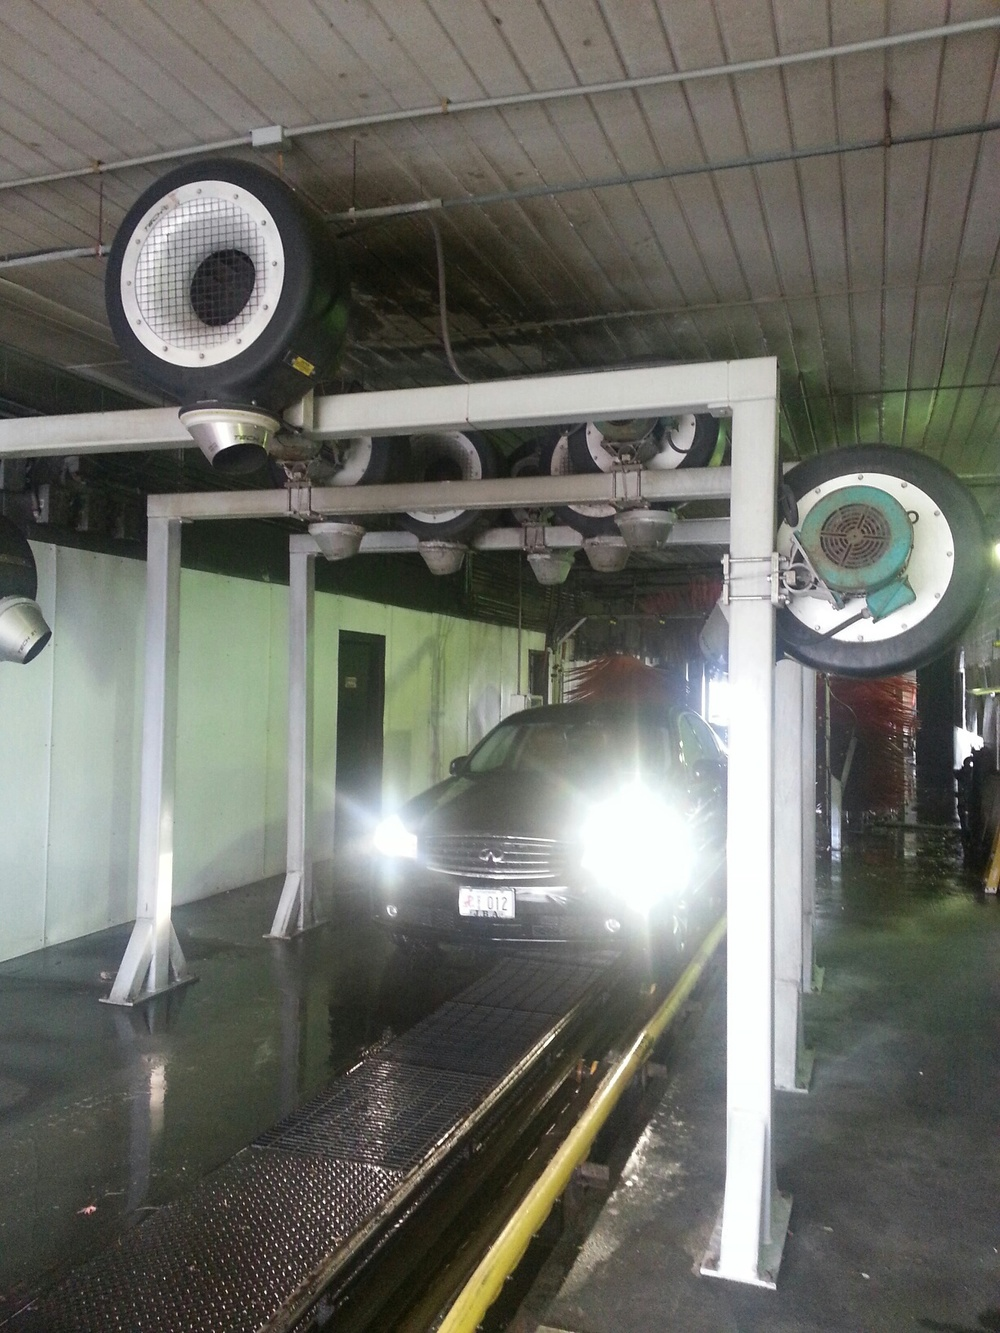 Full Service Car Wash.jpg